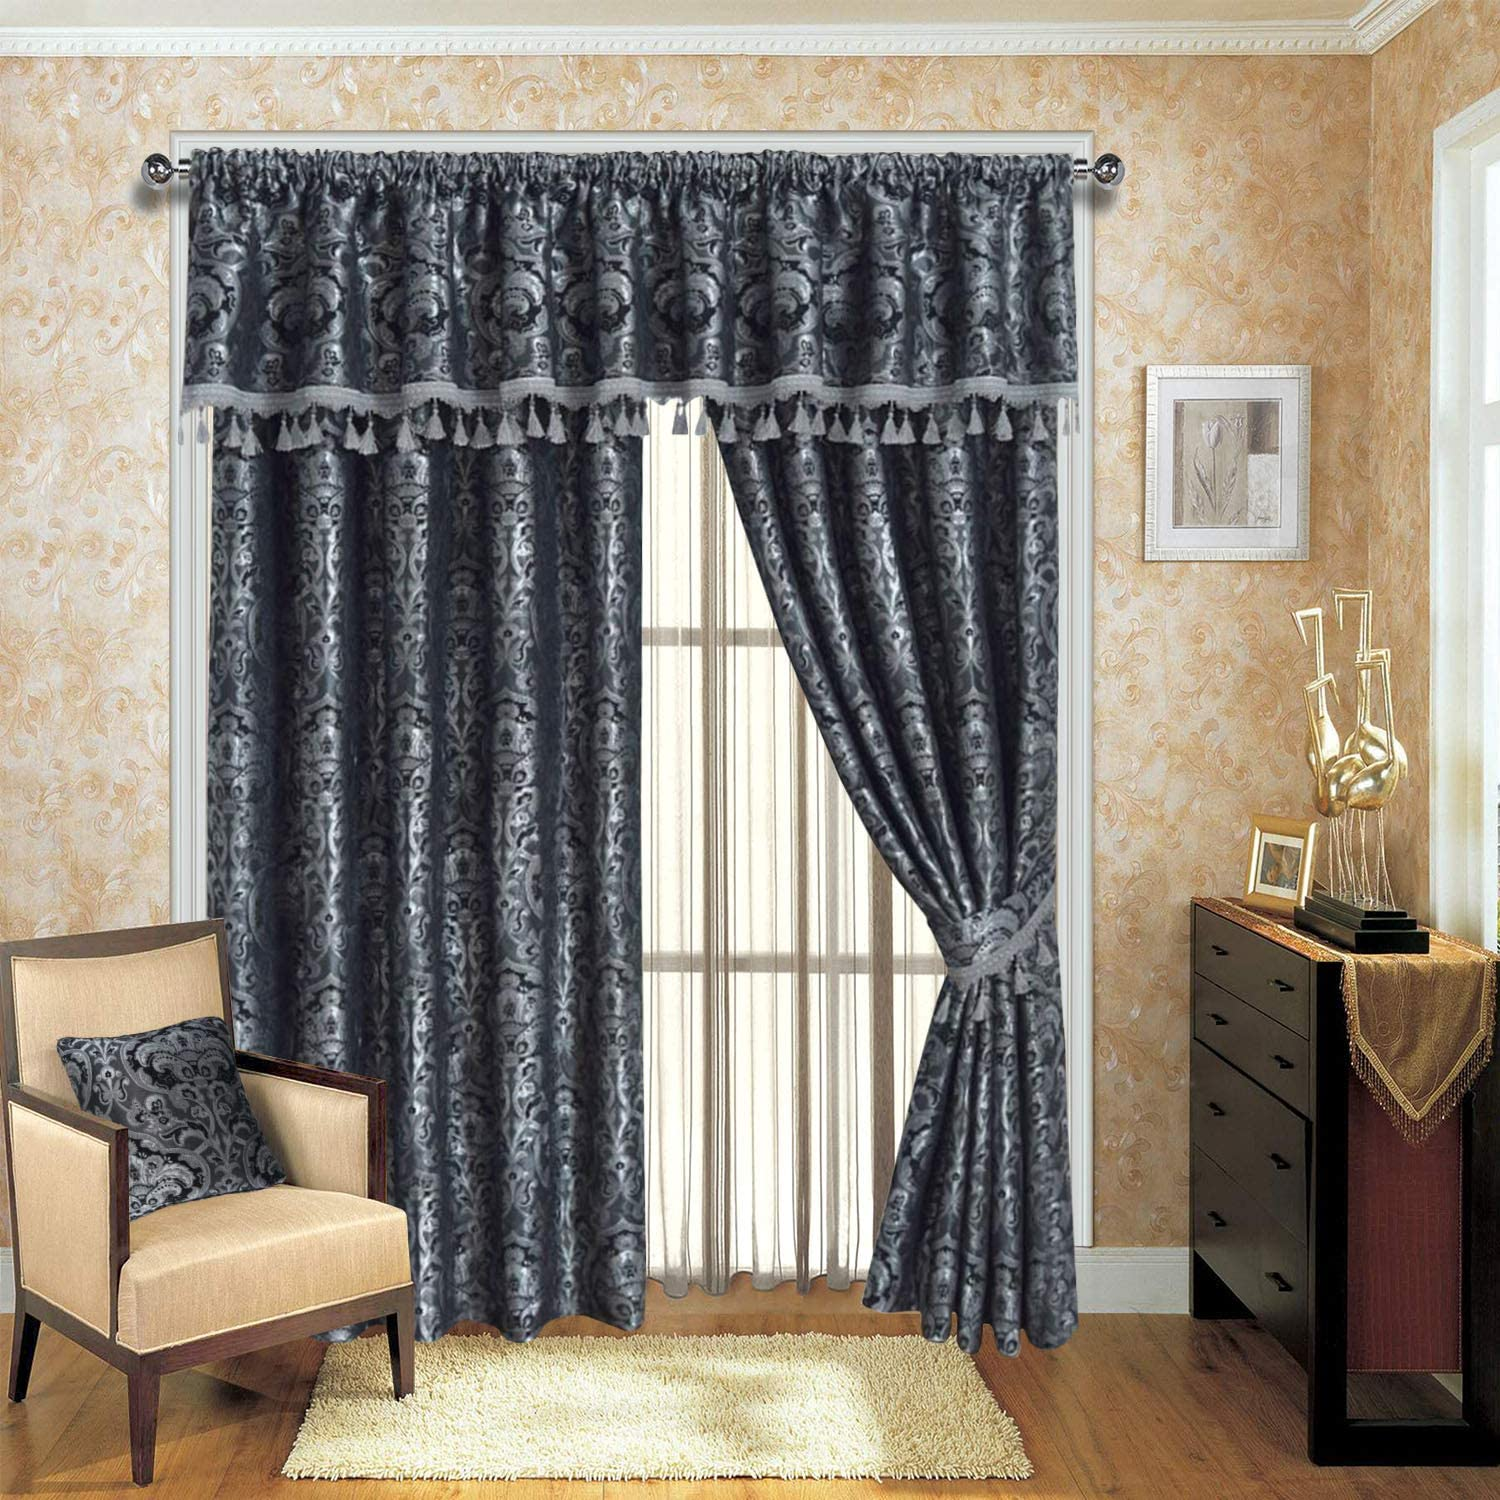 Imperial Rooms Grey Jacquard Pencil Pleat Window Fully Lined Curtains For Living Room Bedroom Kitchen Drapes Panels With Pelmets Tie Backs Grey Georgia 46 X 54 116cm X 137cm Amazon Co Uk Kitchen